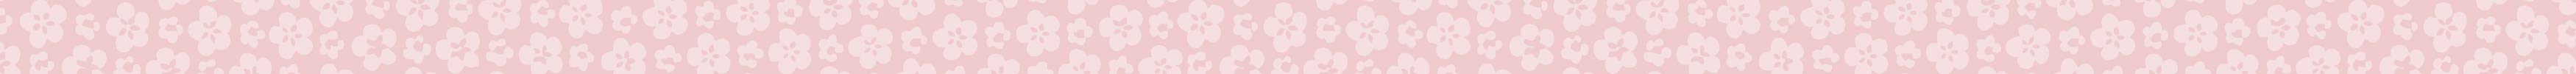 pink banner with cherry blossom print scrolling a long way to the right!